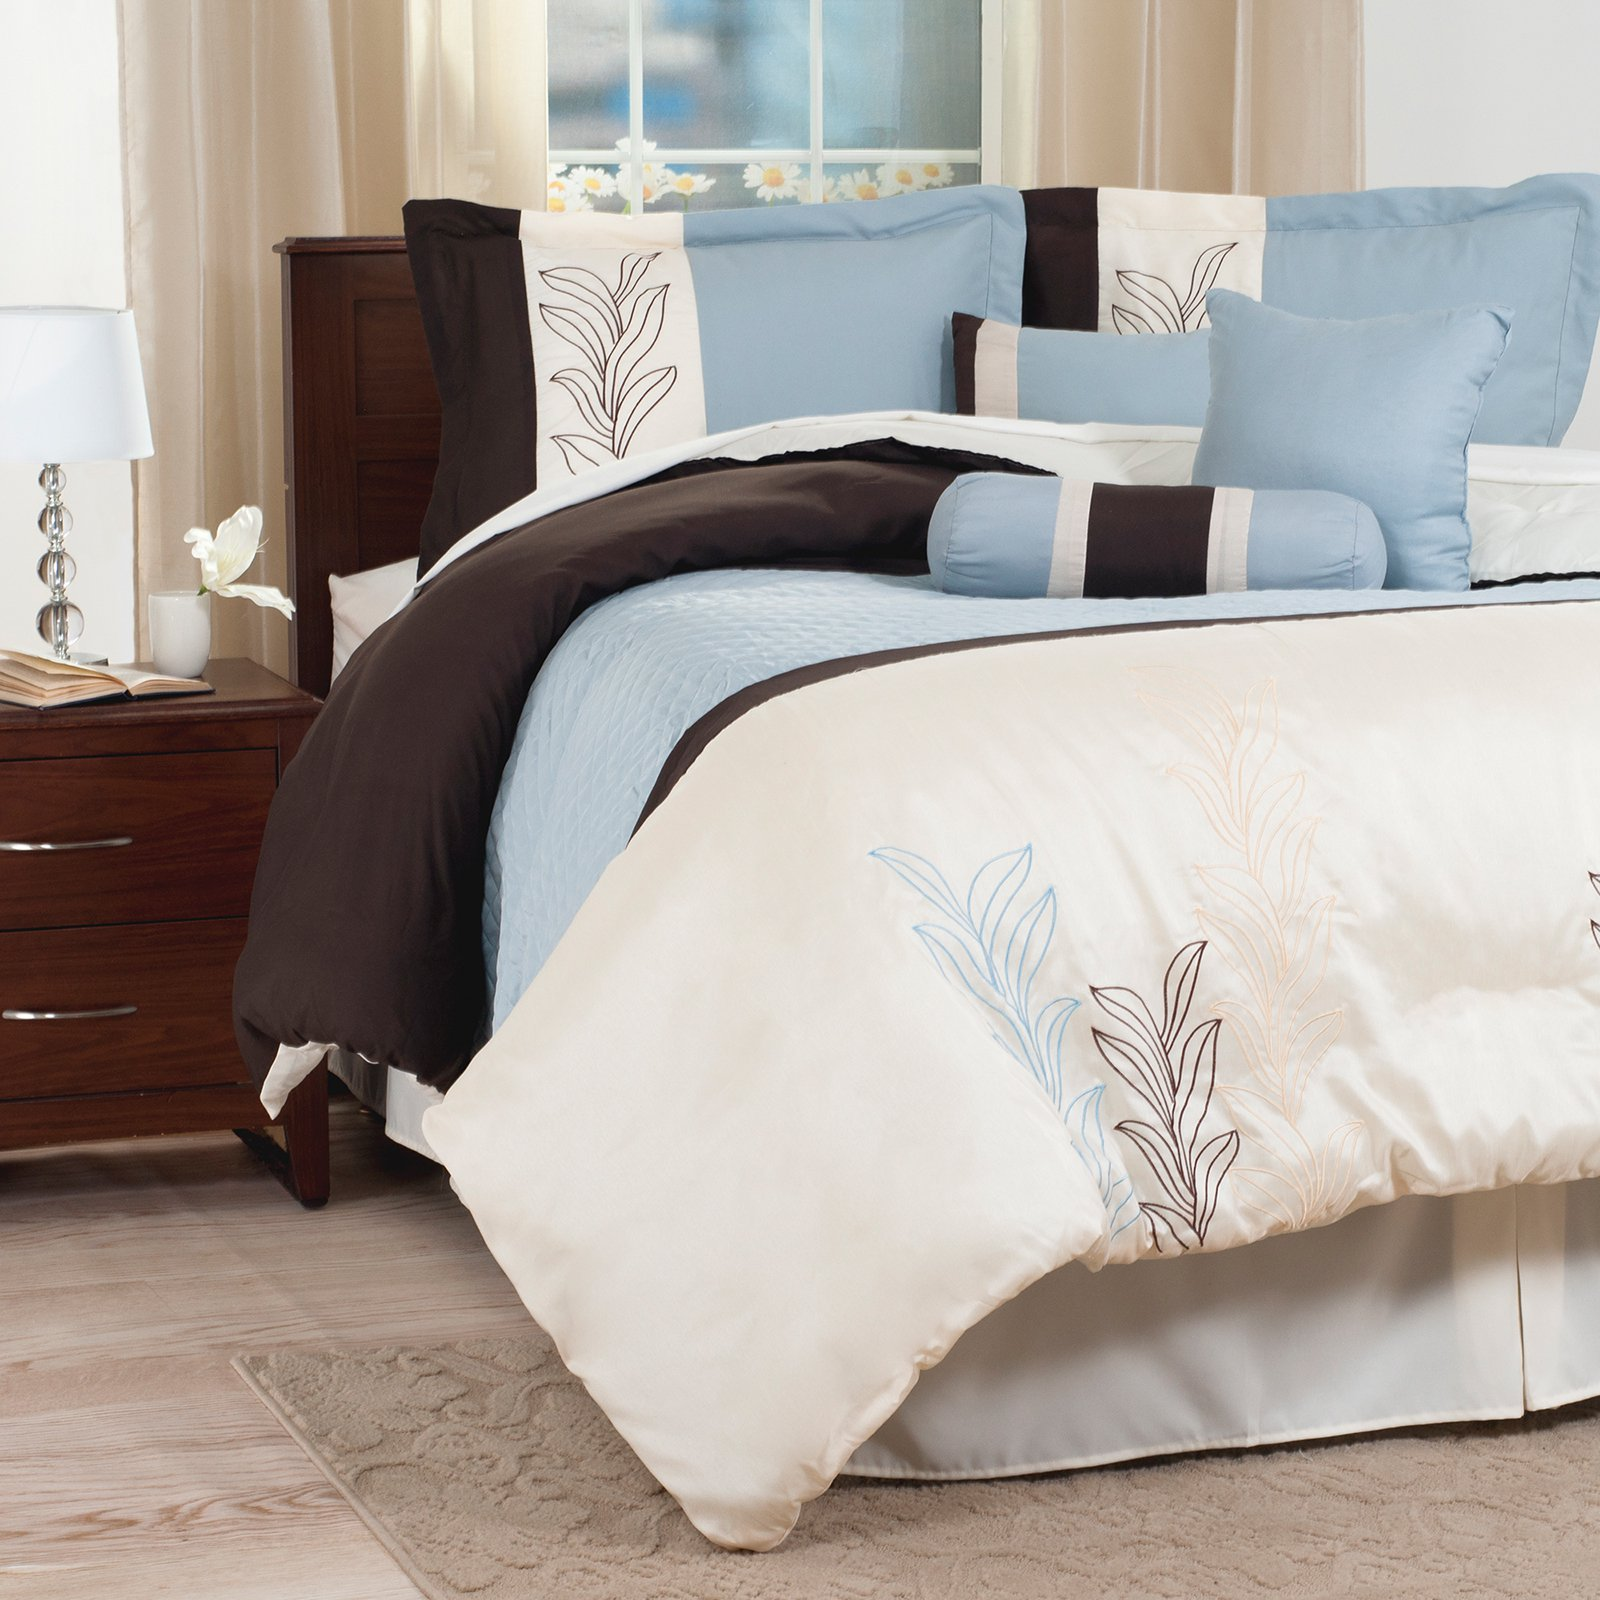 Samantha 7 Piece Embroidered Comforter Set by Lavish Home